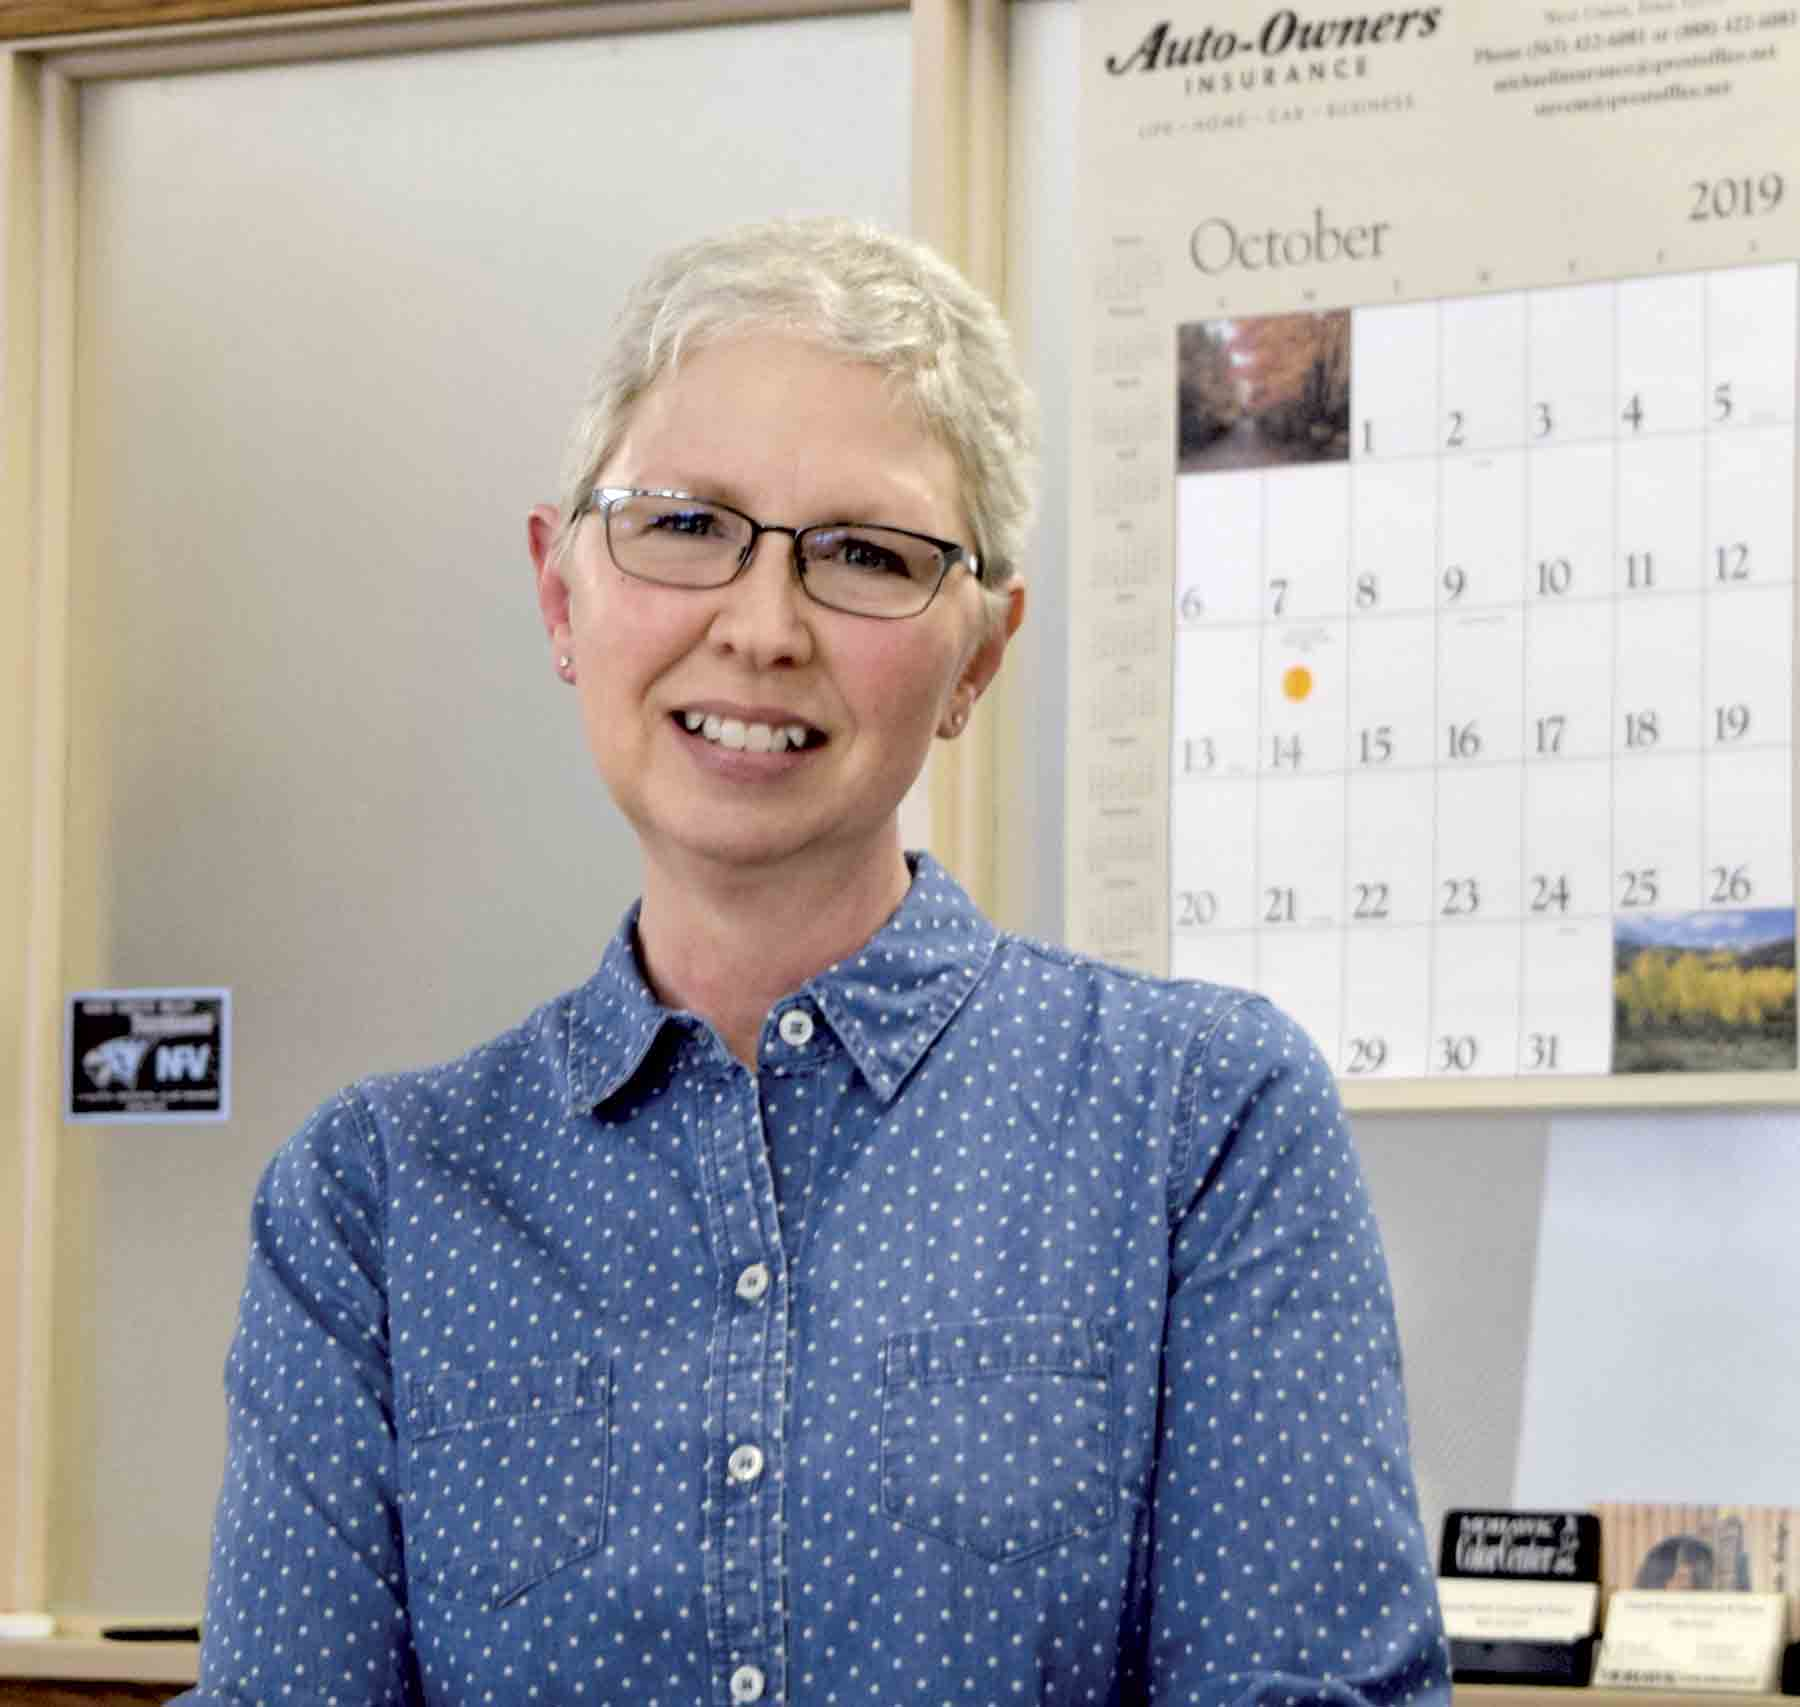 Barb VanHorn was diagnosed with was ductal carcinoma in situ a typically noninvasive form of breast cancer.Shortly after her first surgery to remove the cancer cells, Barb learned that her cancer was becoming more invasive.After three months of chemotherapy followed by daily...